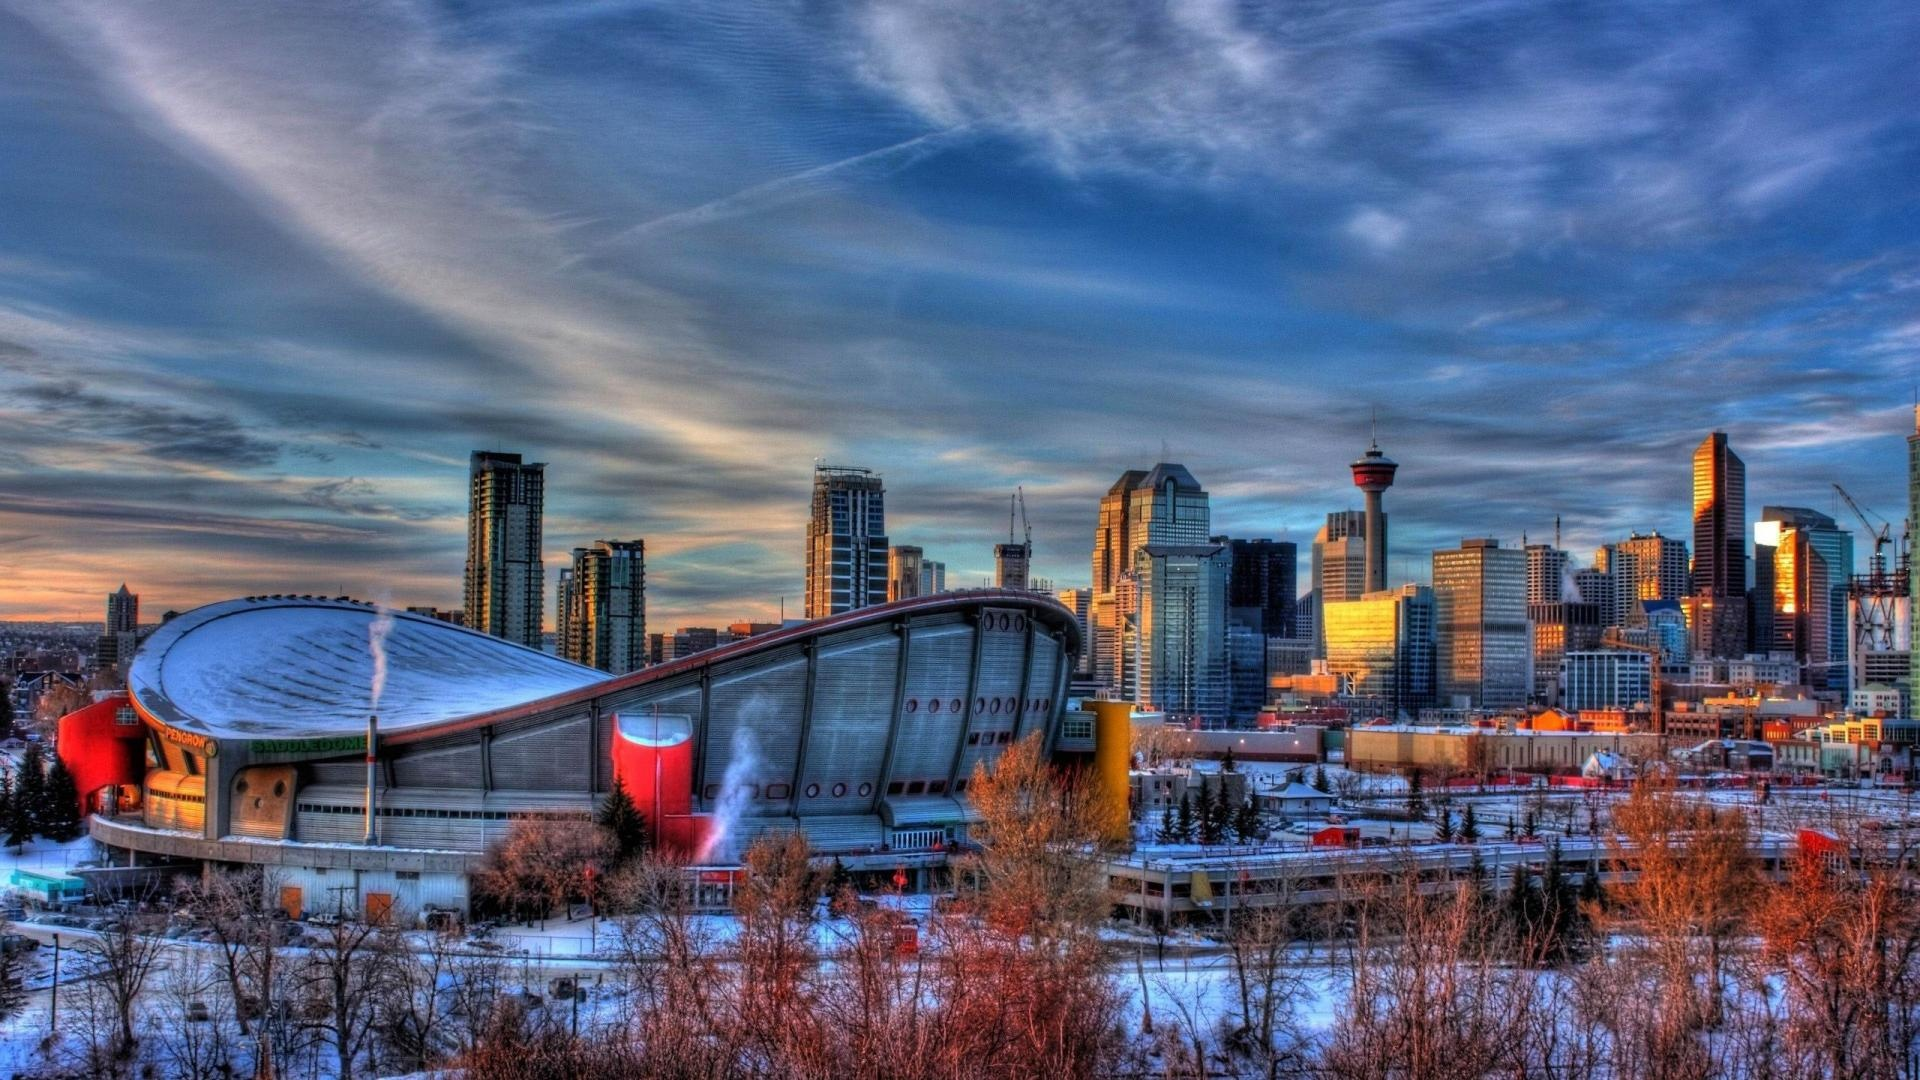 calgary alberta canada wallpapers 1920x1080 618554